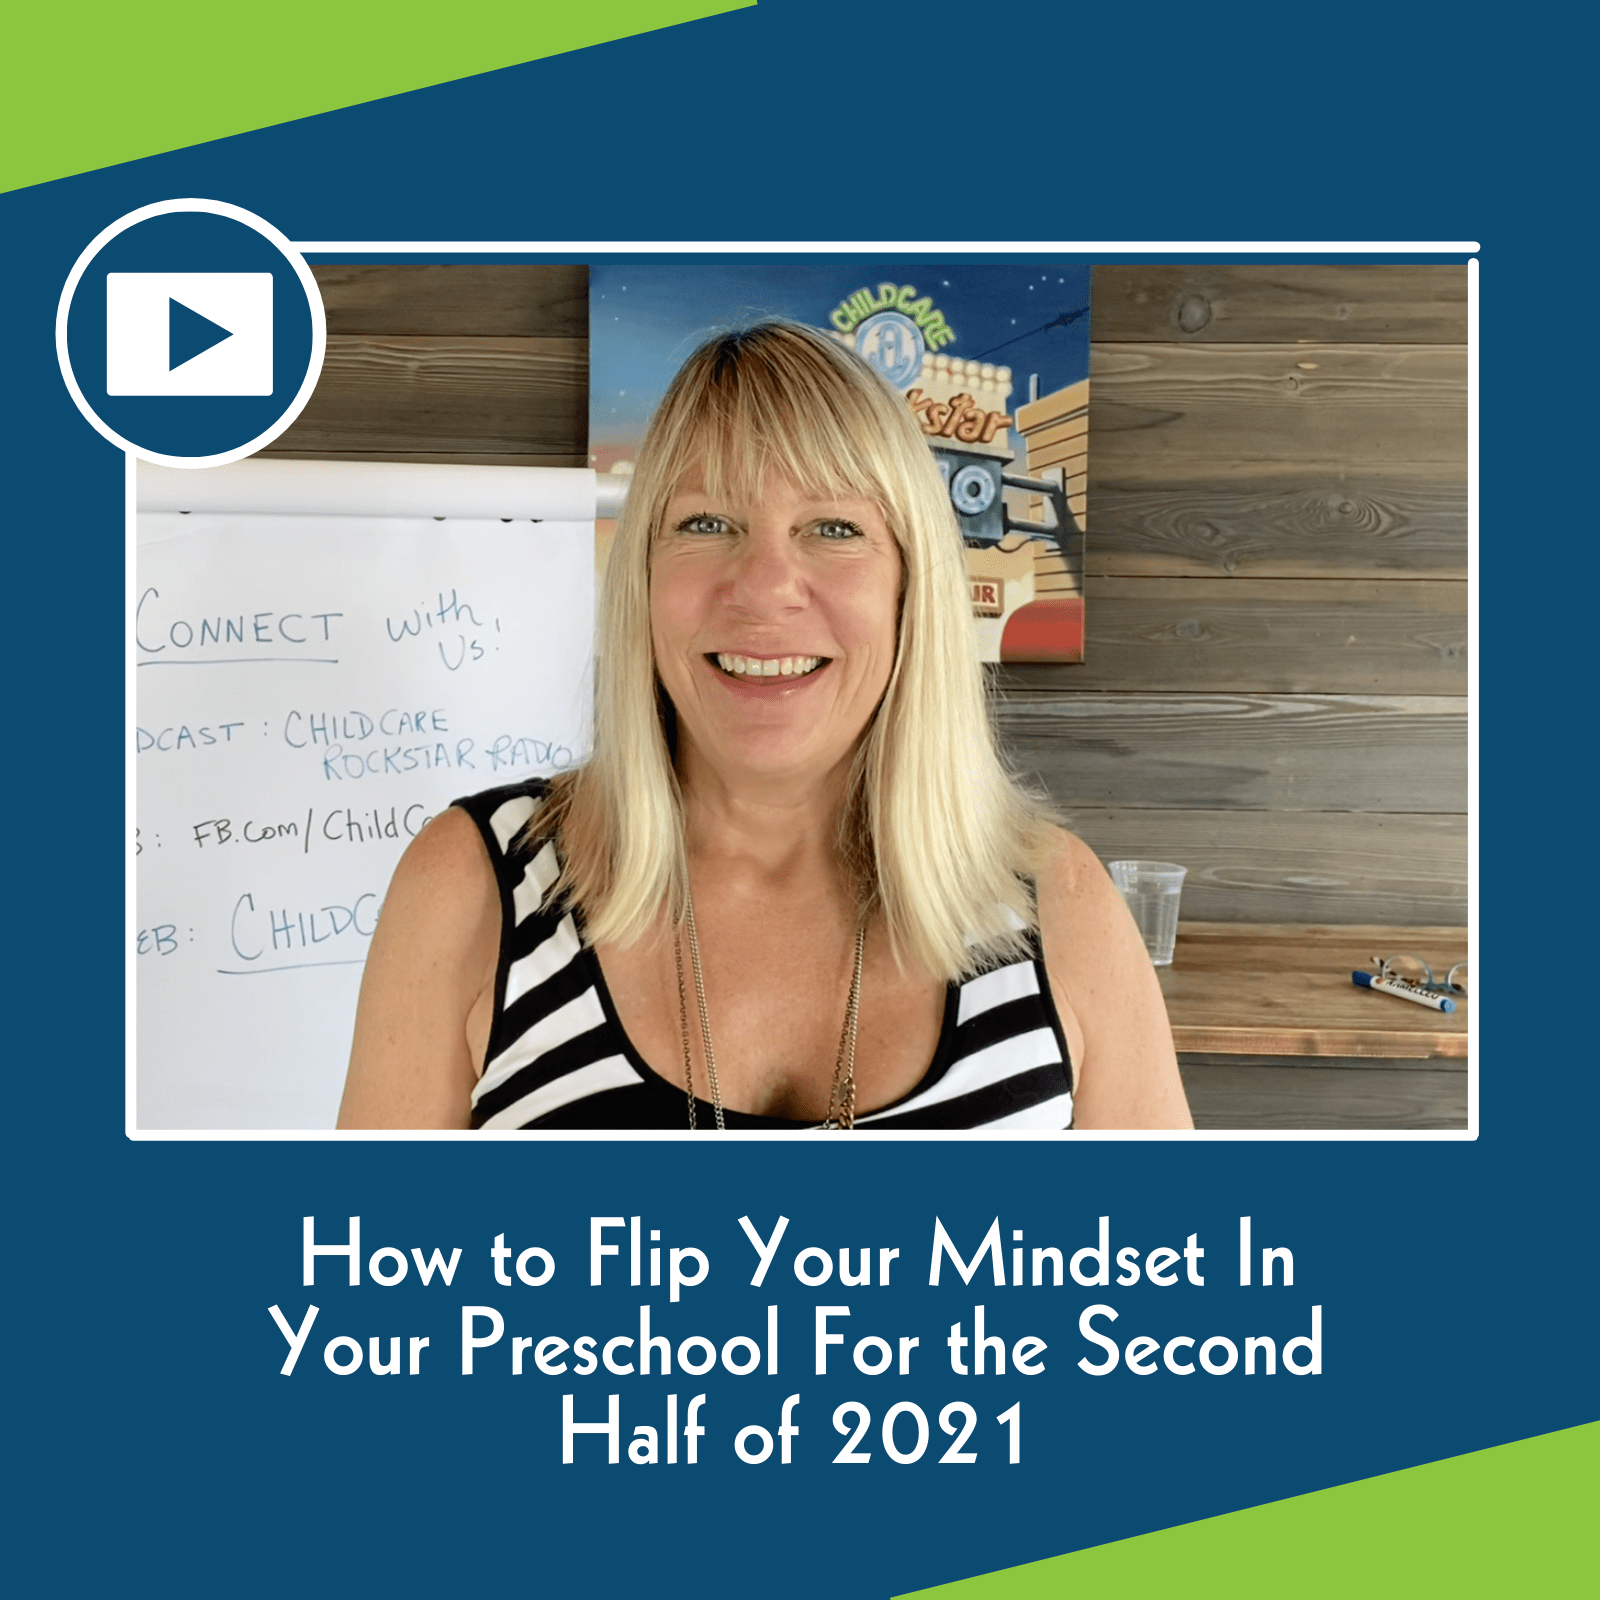 How to Flip Your Mindset In Your Preschool For the Second Half of 2021